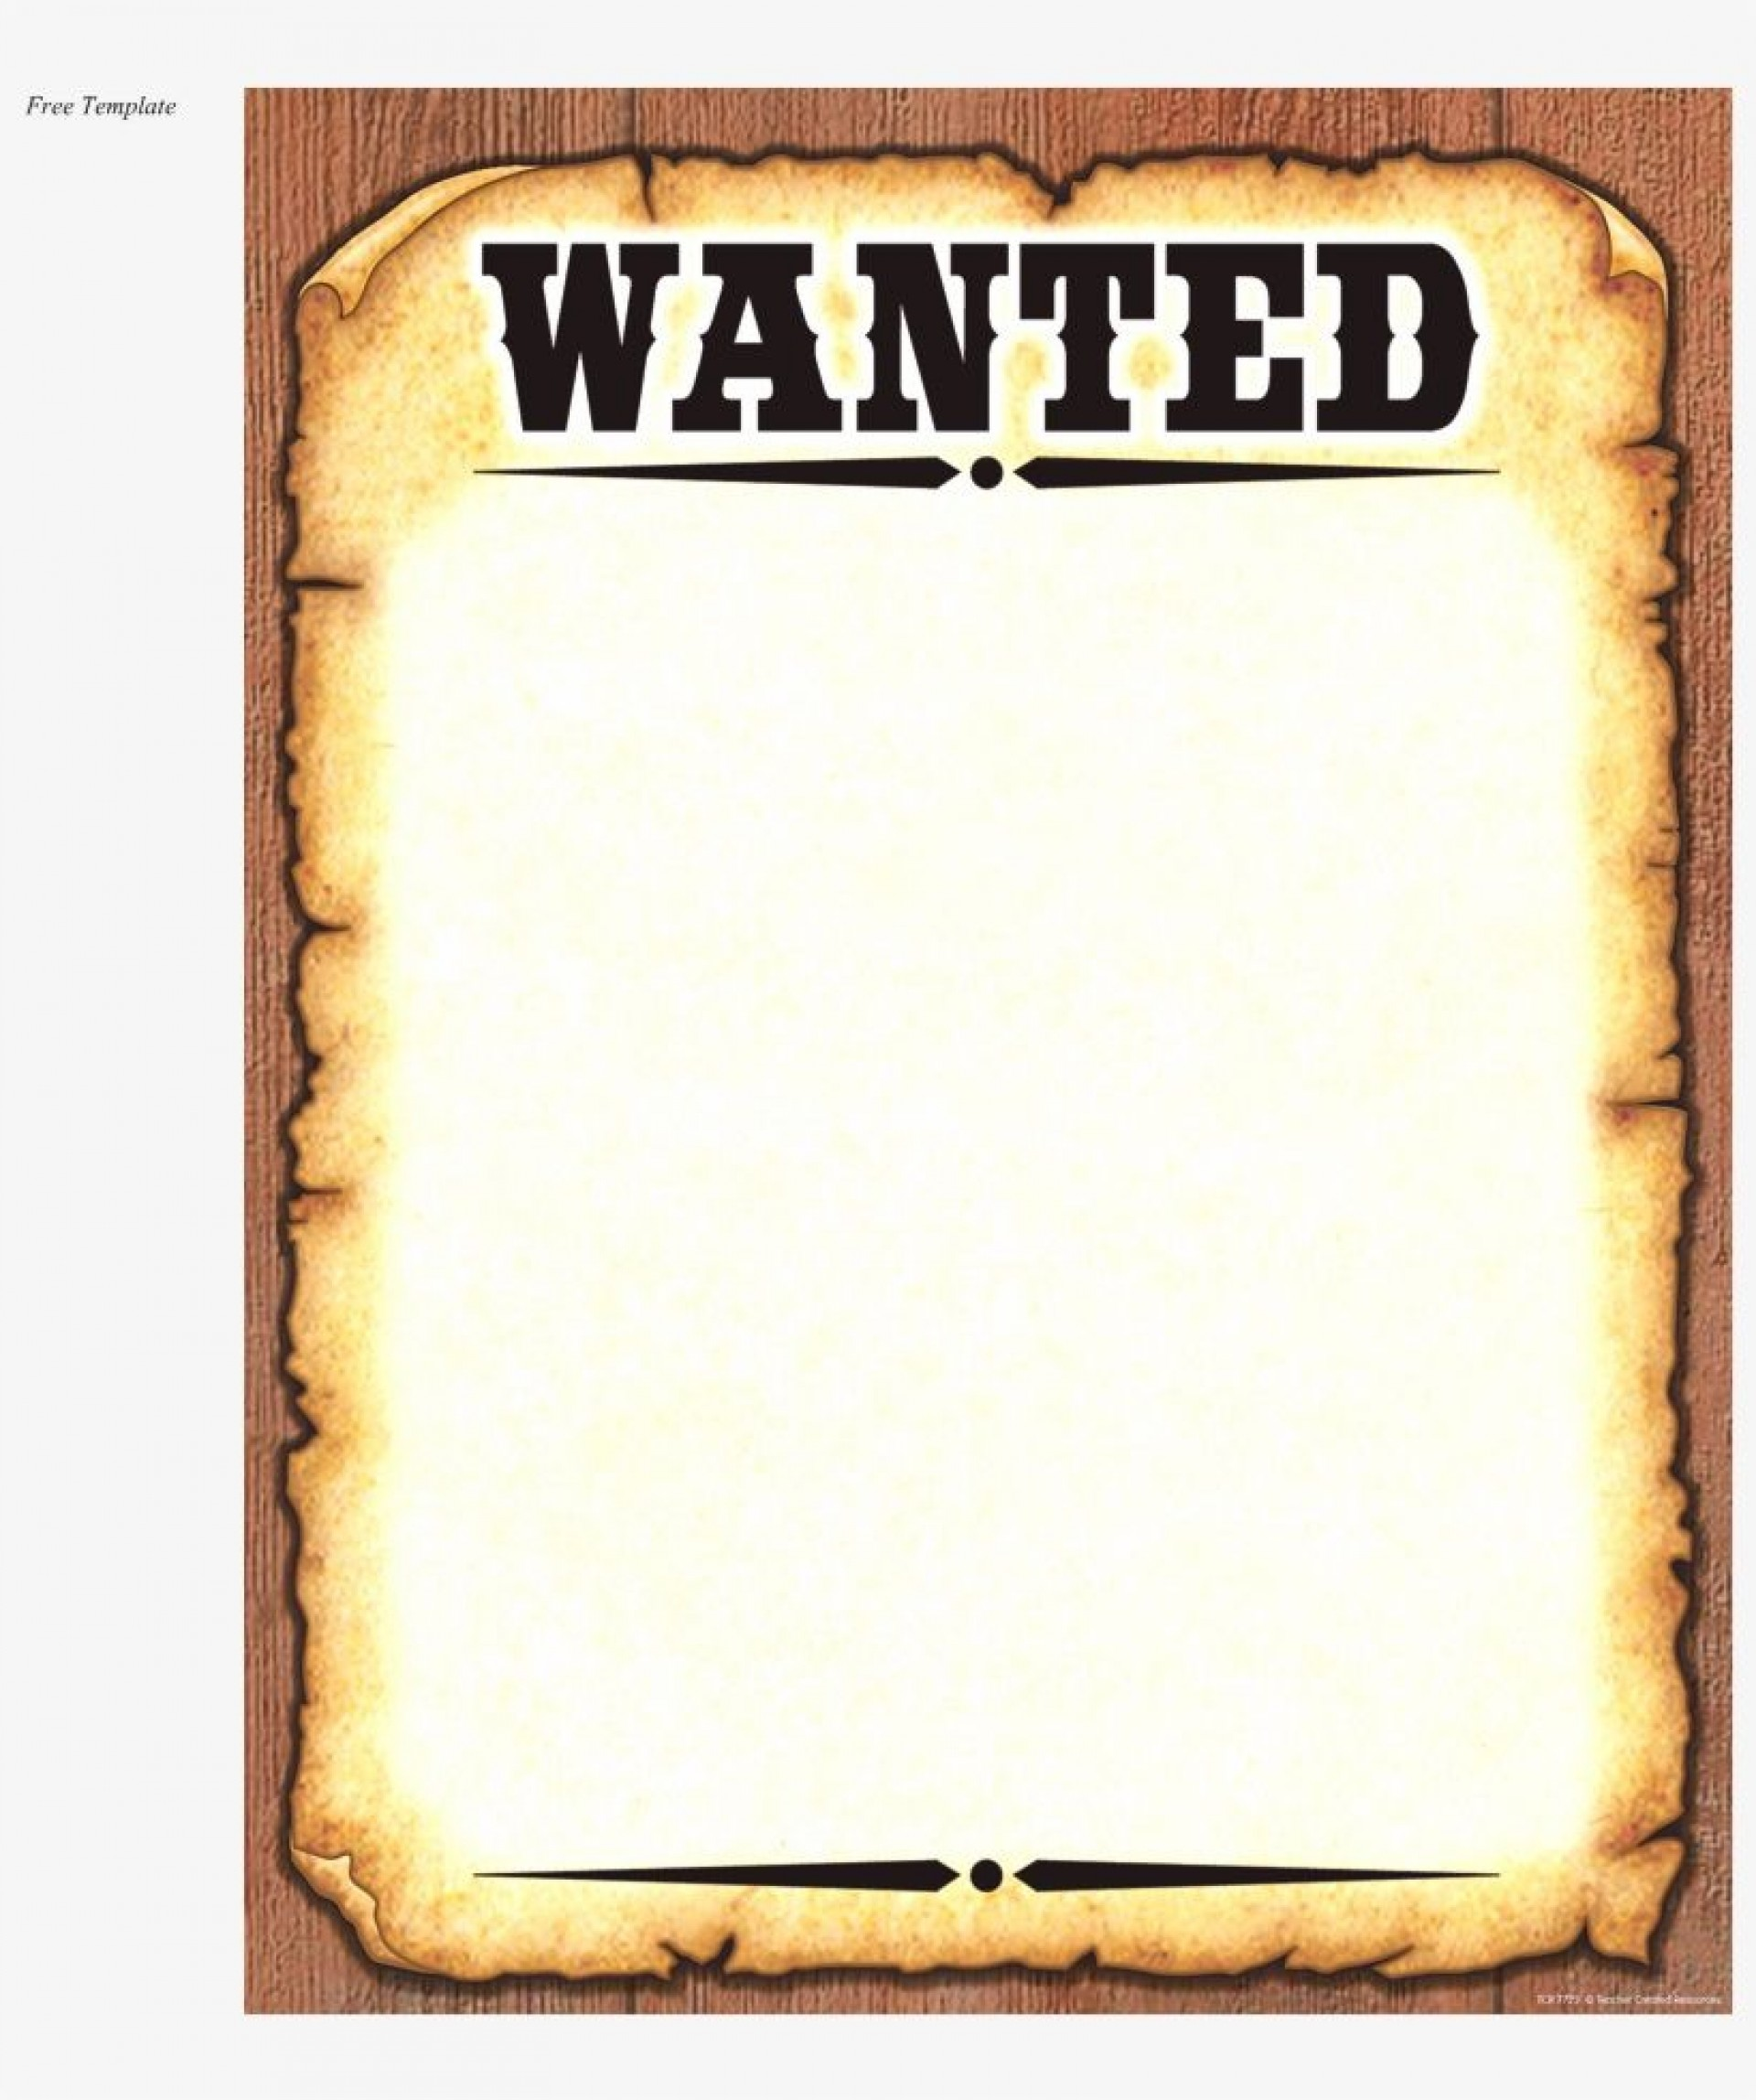 004 Shocking Wanted Poster Template Free Printable Idea  Most1920